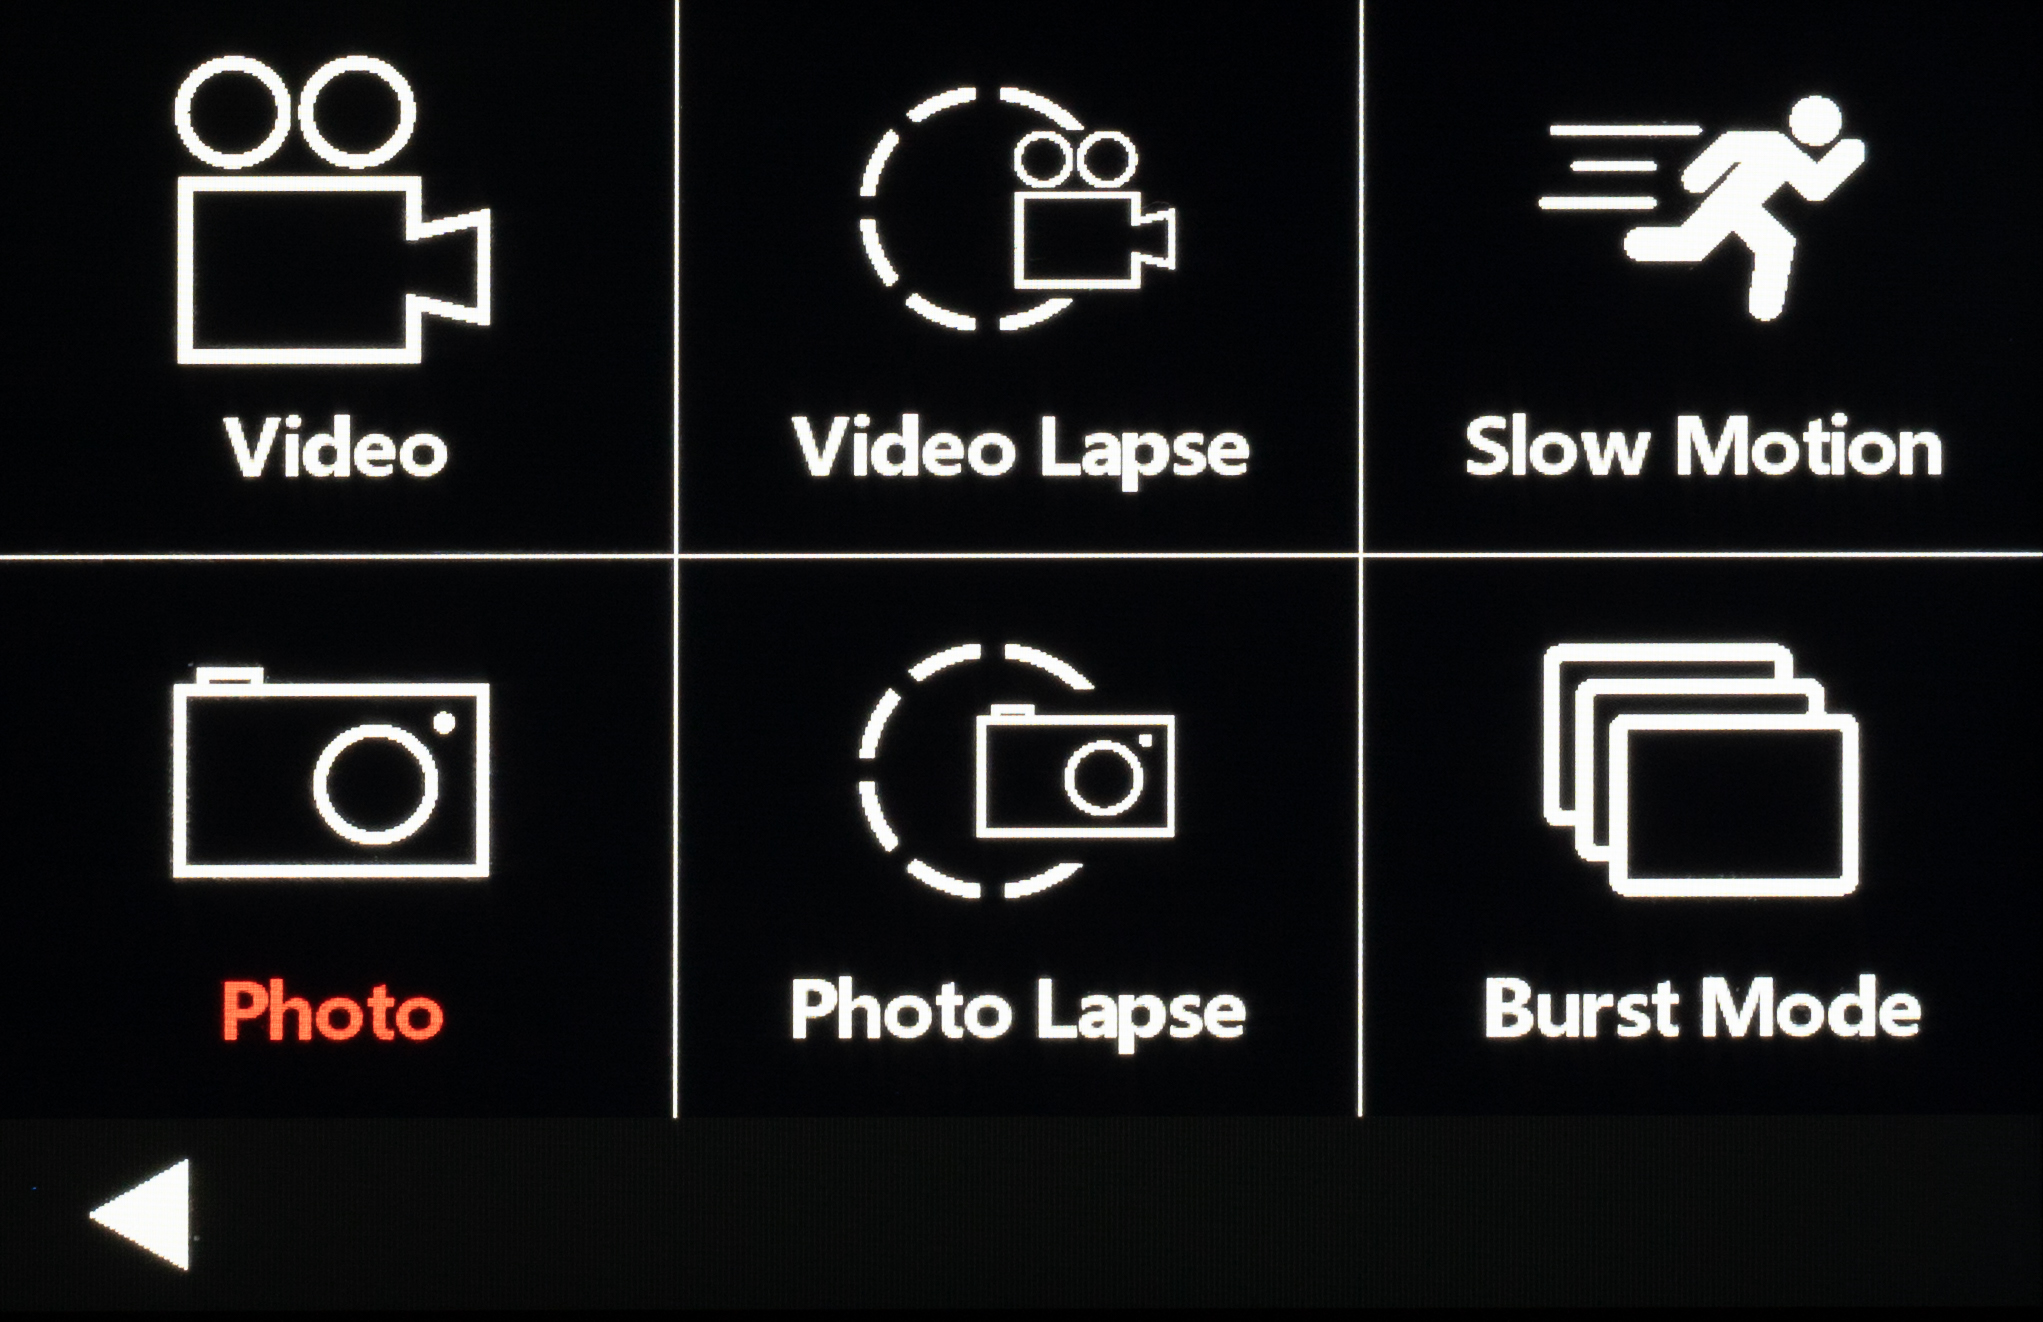 There are 6 different modes for you to select from - video, photo, video lapse, photo lapse, slow motion, and burst mode.